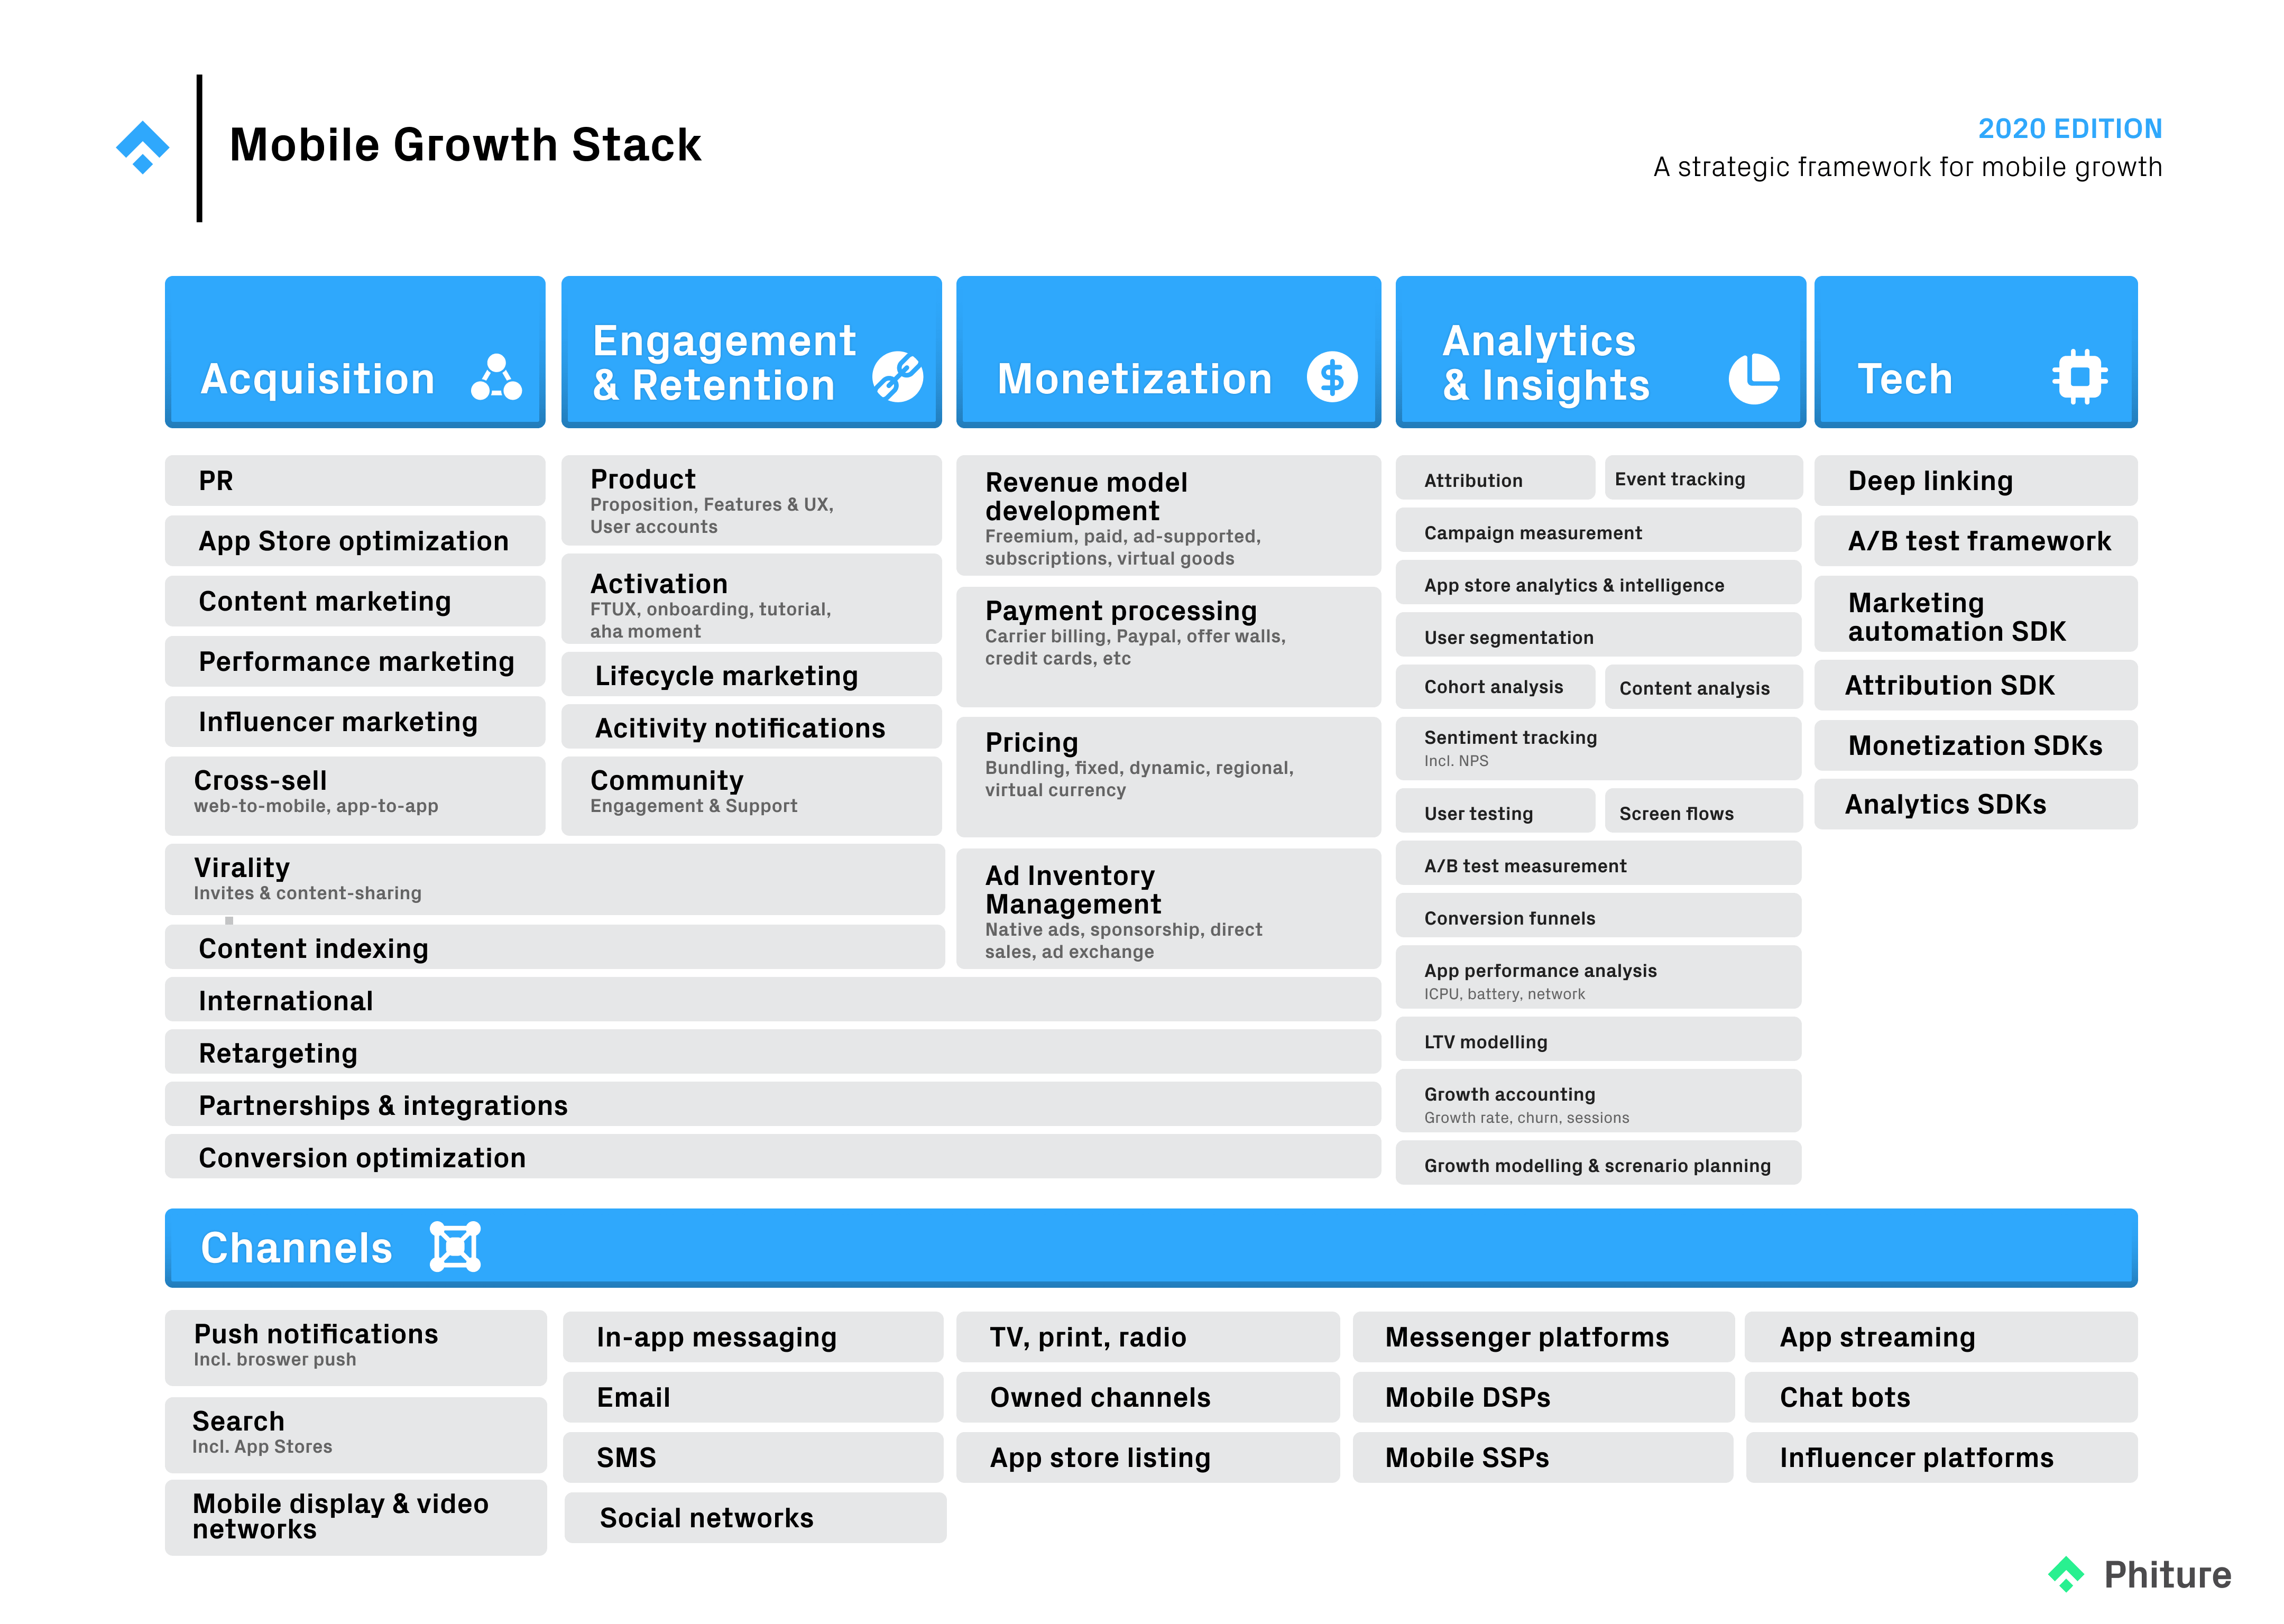 The third iteration of the Mobile Growth Stack